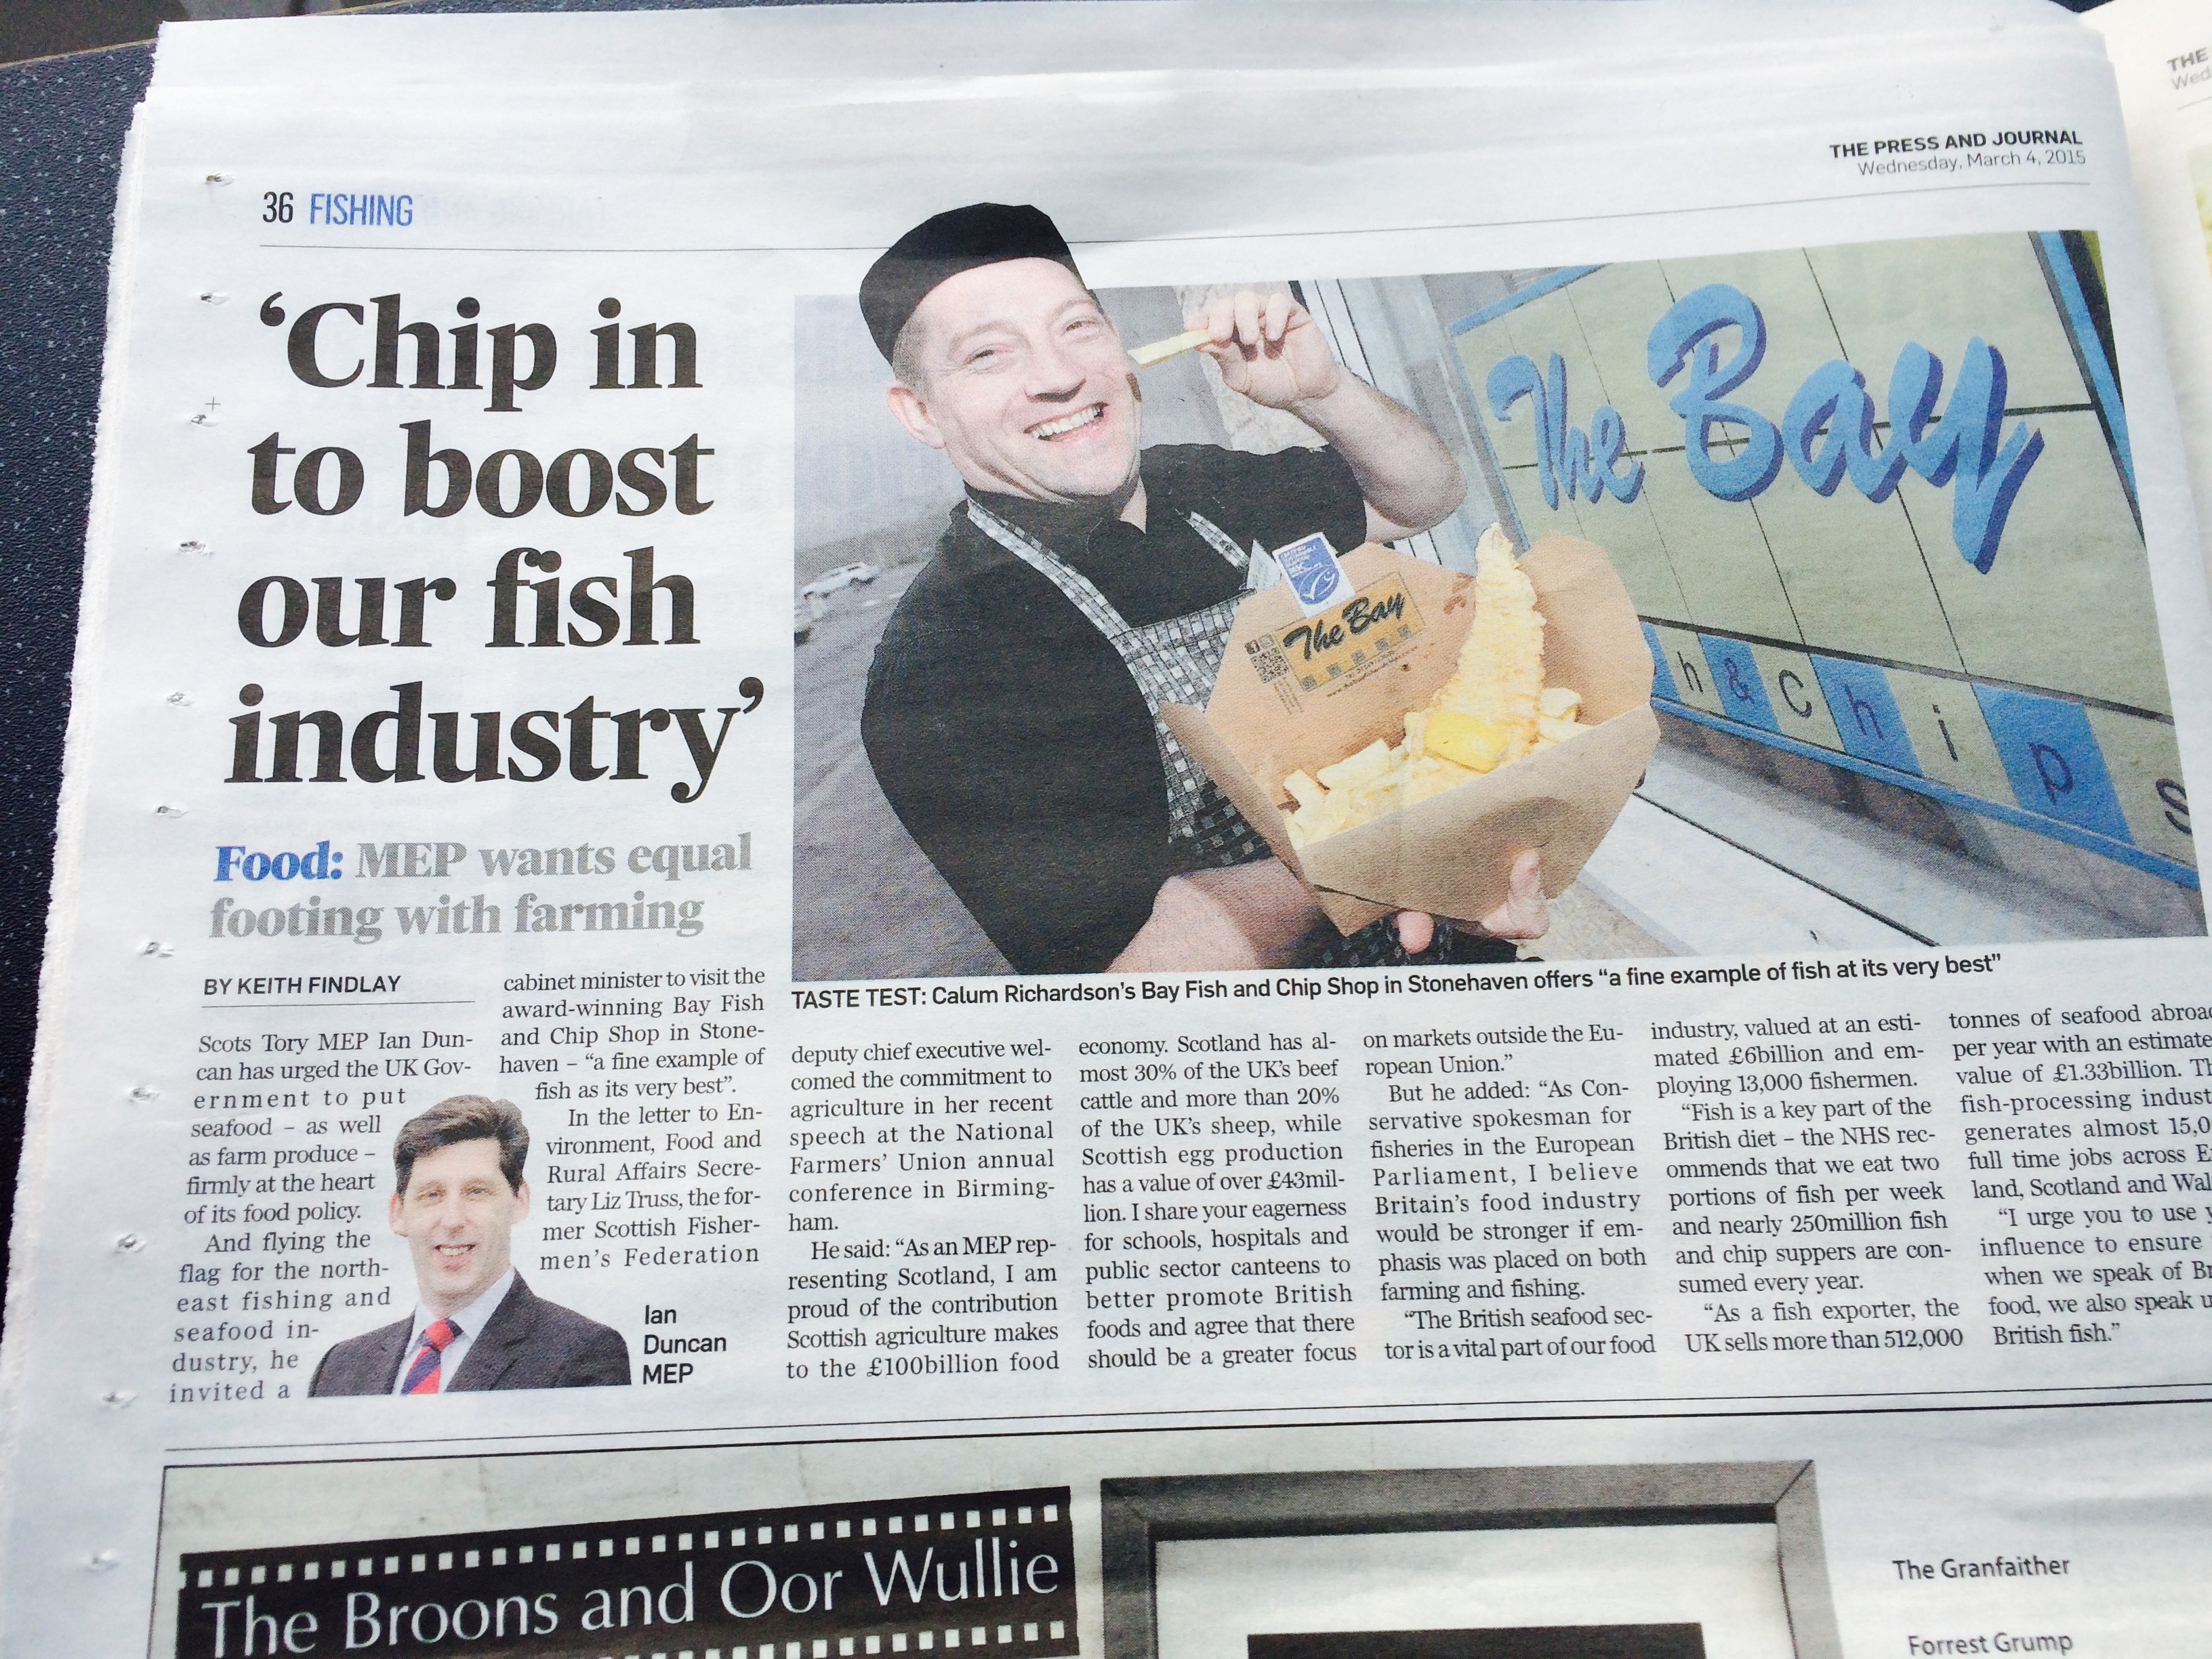 Chip in to boost our fish industry